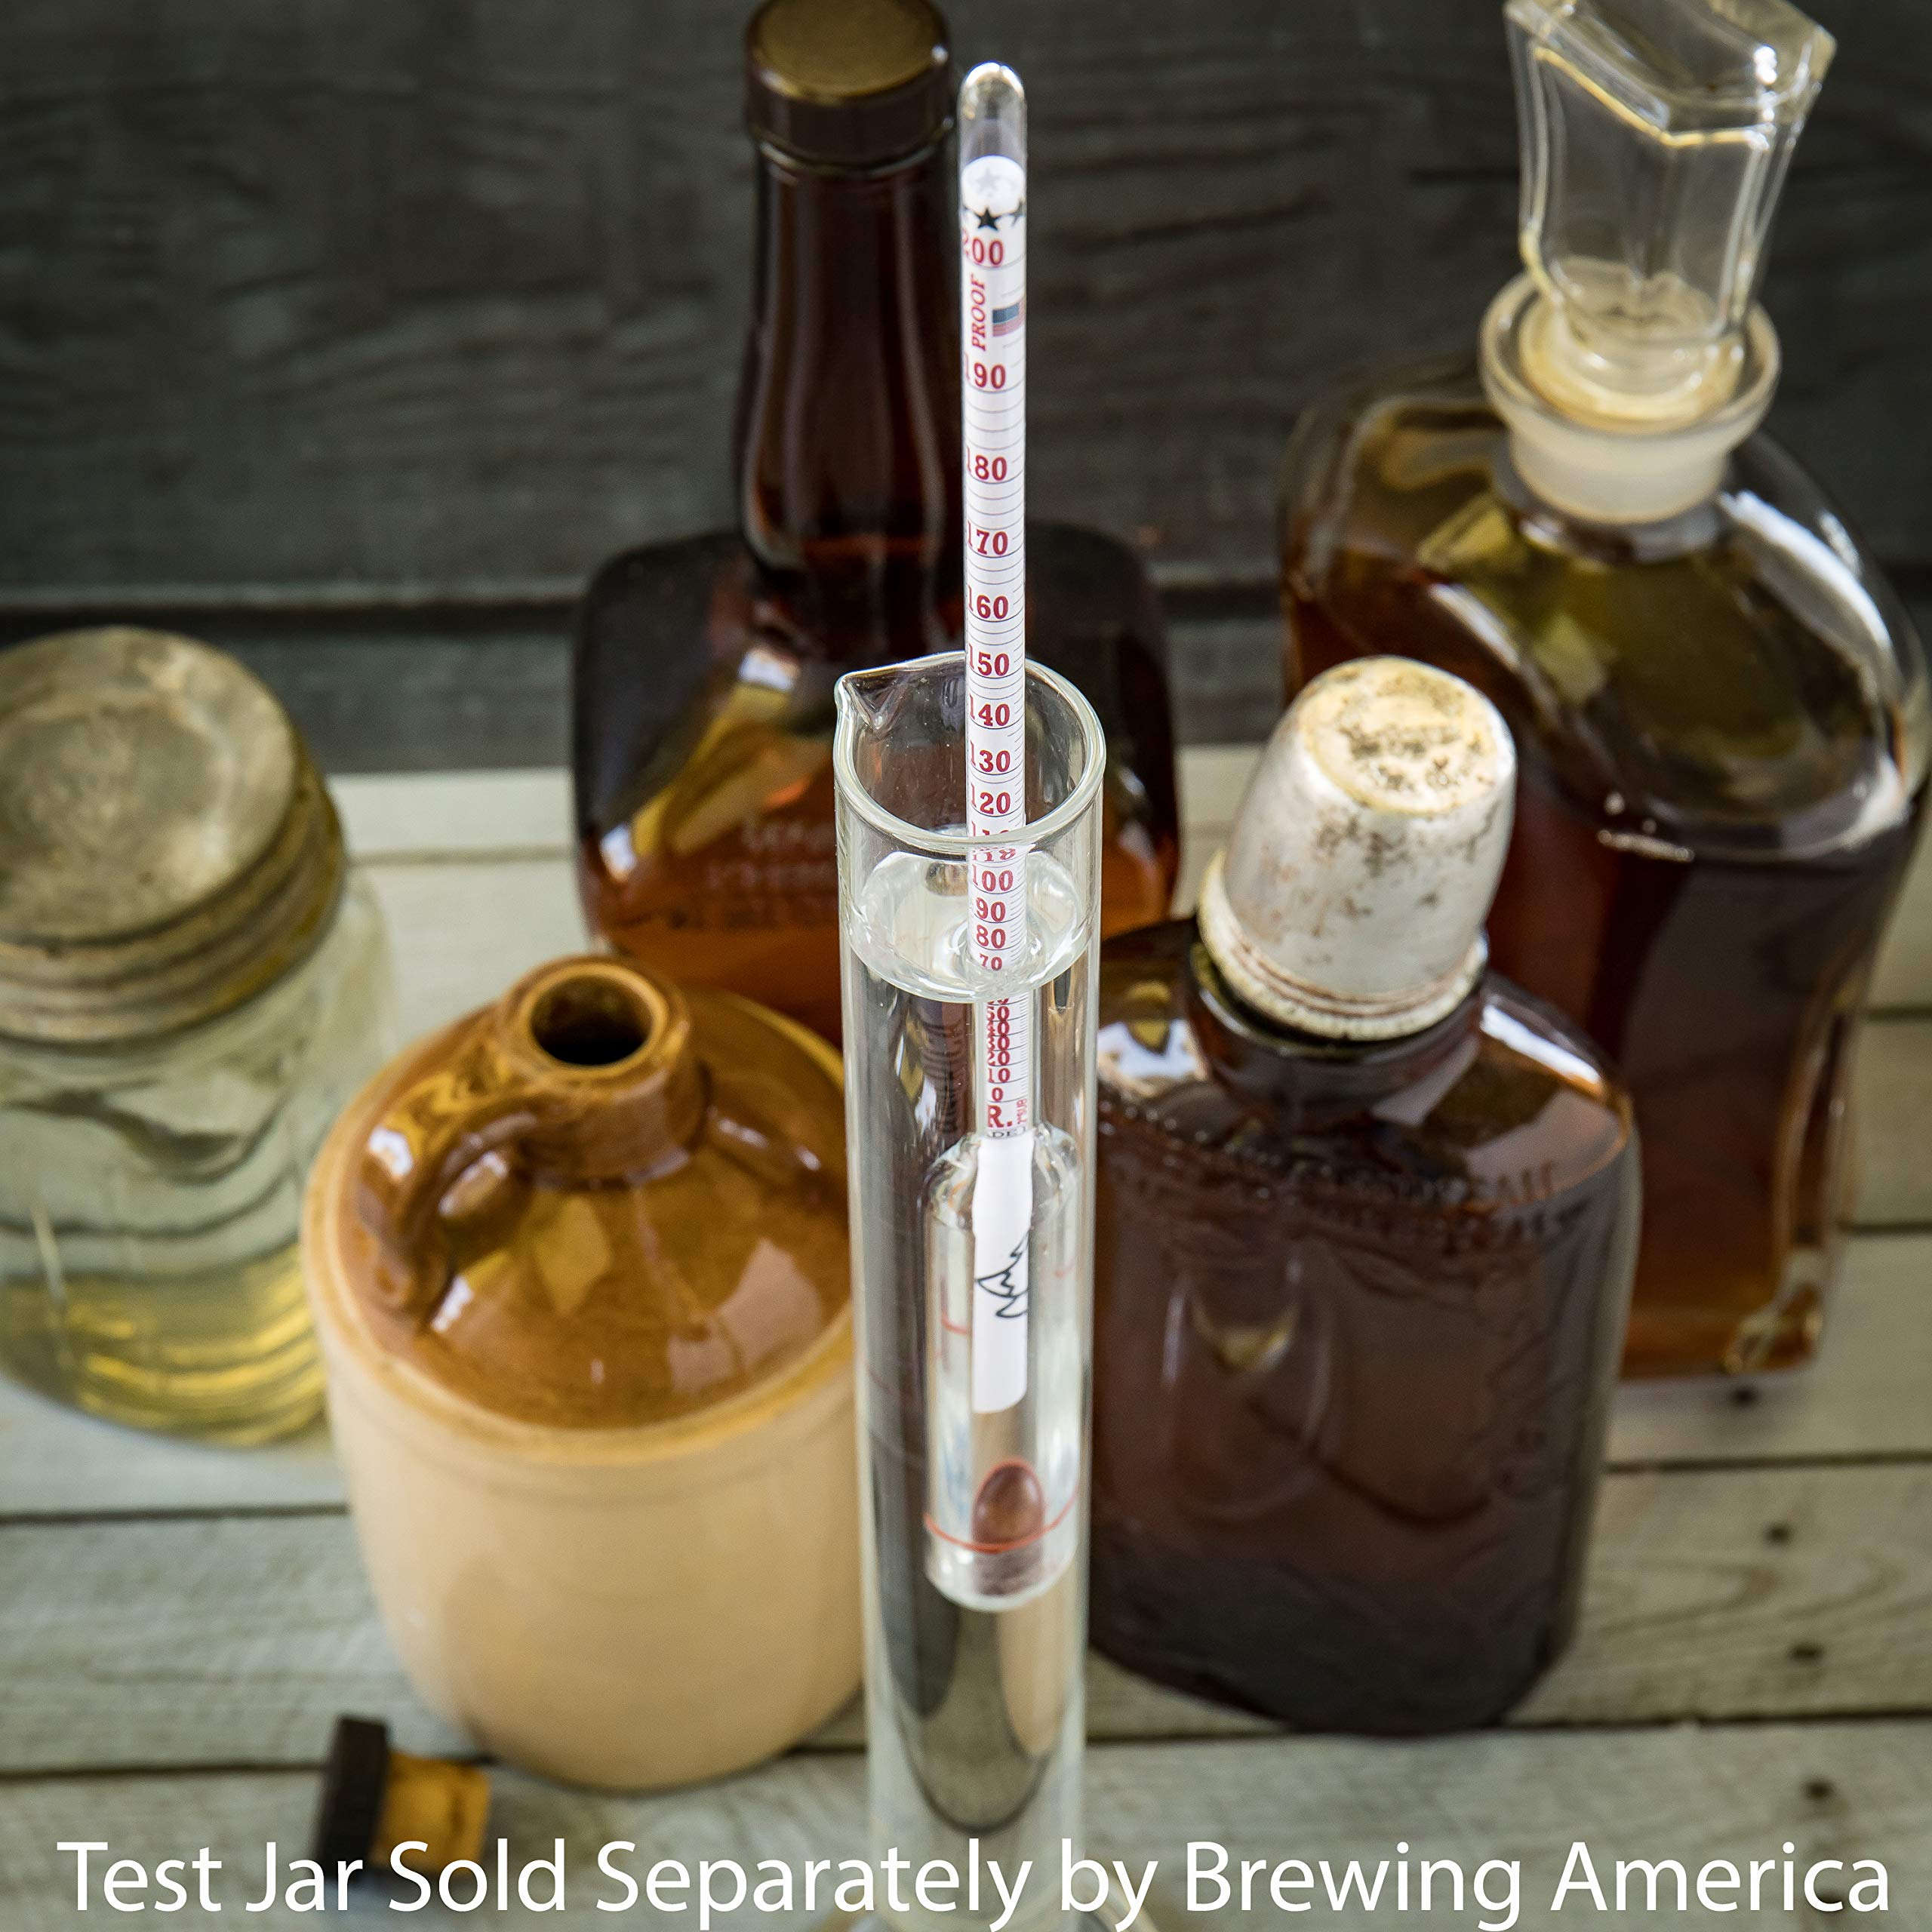 American-Made Alcohol Hydrometer Tester 0-200 Proof & Tralle Pro Series Traceable - Distilling Moonshine Alcoholmeter by Brewing America (Image #8)